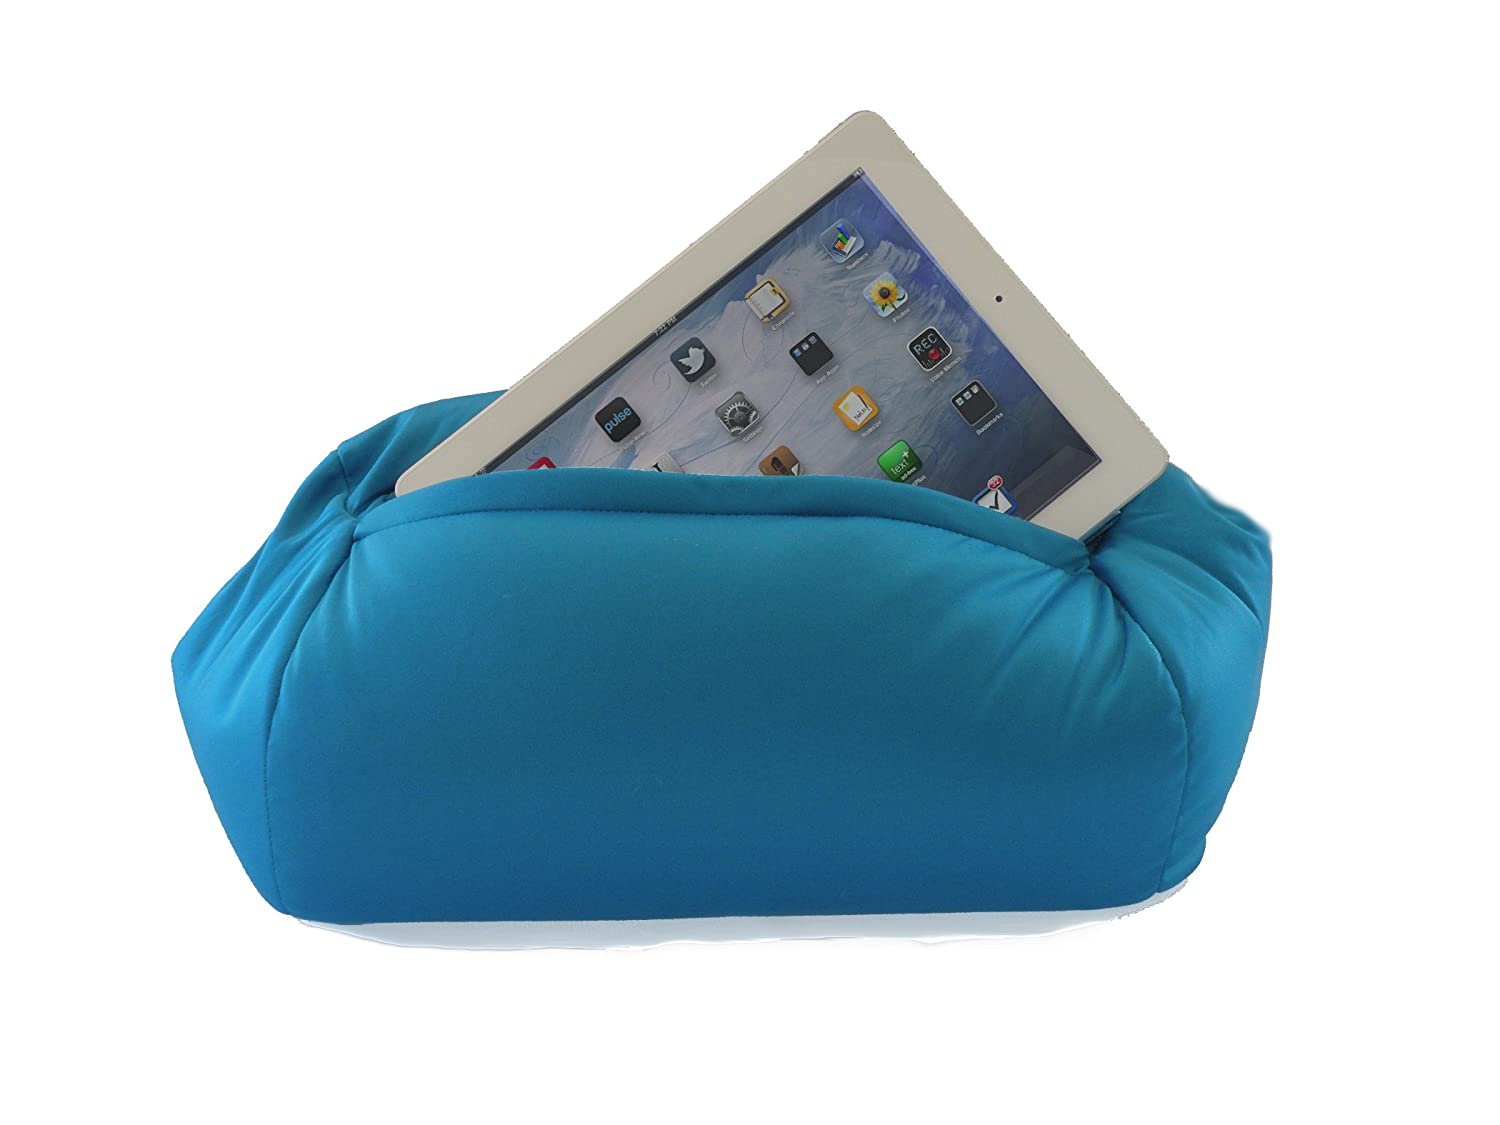 Renegade Concepts: Lap PRO iPad 3 iPad 2 Stand//Caddy Universal Beanbag Lap Stand Tablet Accessory for iPad 1 iPad 4 Acer,